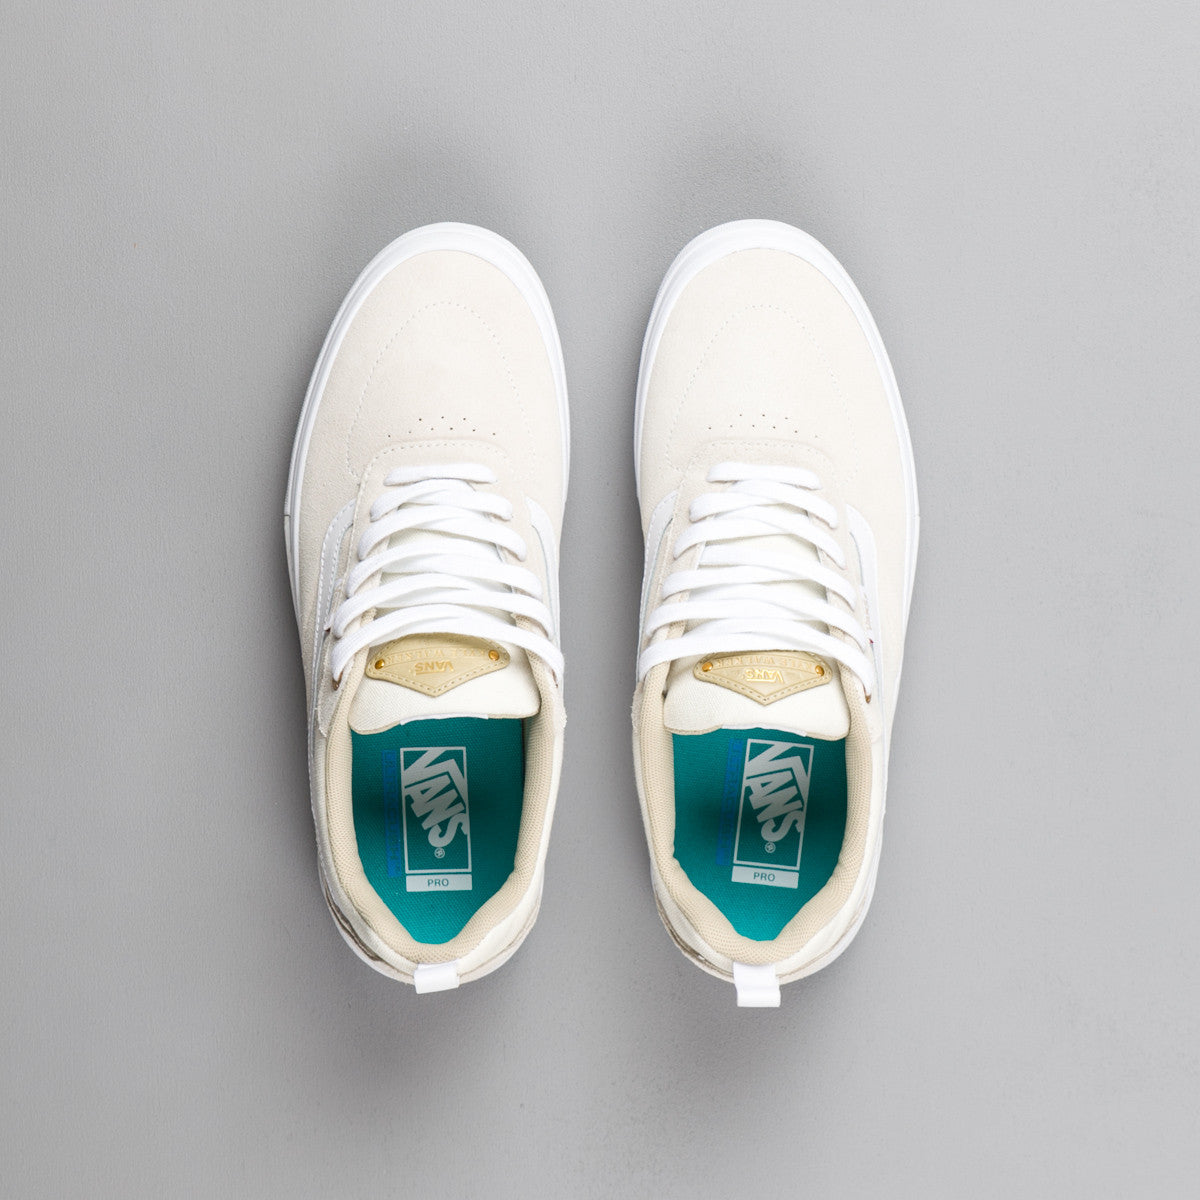 Vans Kyle Walker Pro Shoes - White / Ceramic